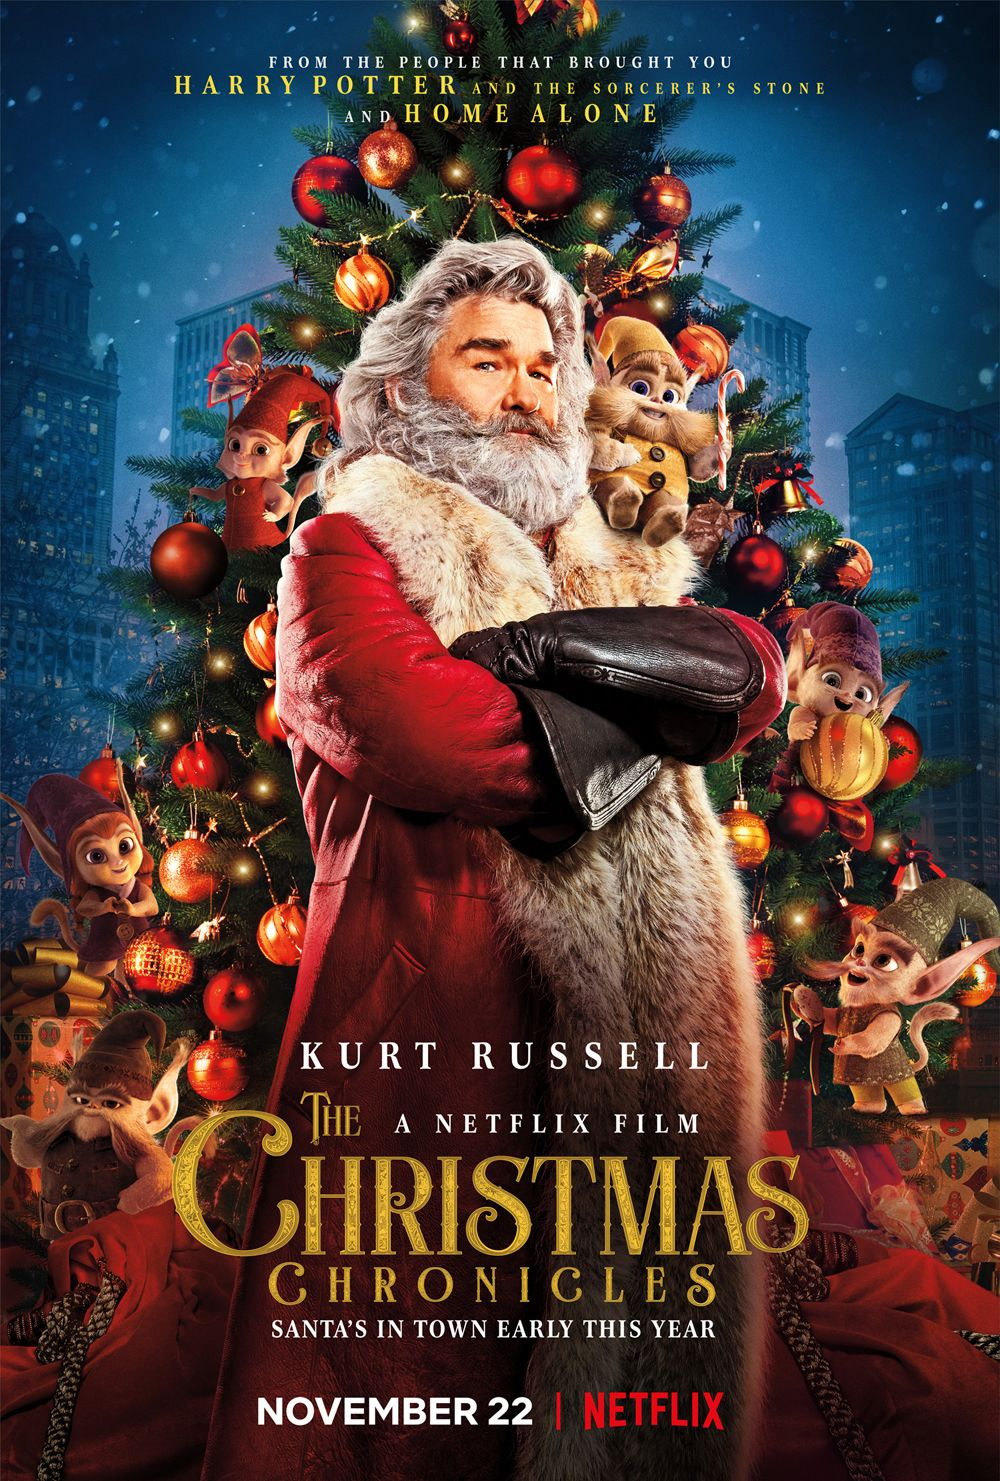 The Christmas Chronicles Trailer: Kurt Russell Is Santa in ...